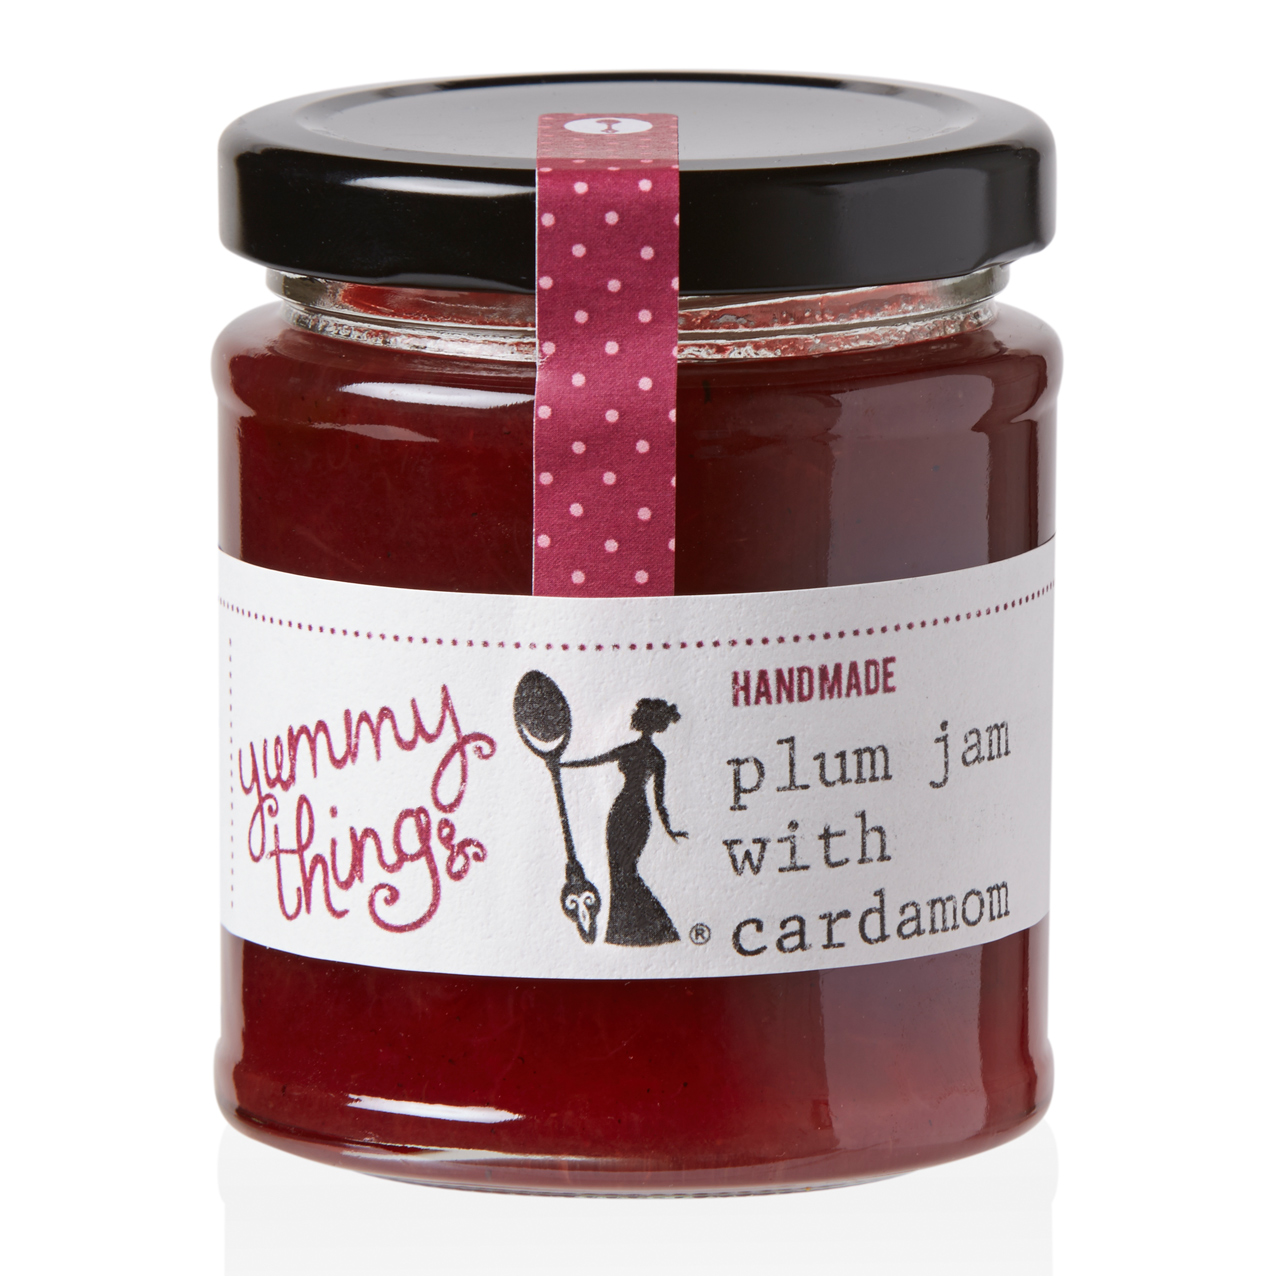 Yummy Things' delicious, seasonal handmade plum jam with cardamom - Handmade in Gosforth, Newcastle upon Tyne - The perfect foodie gift!